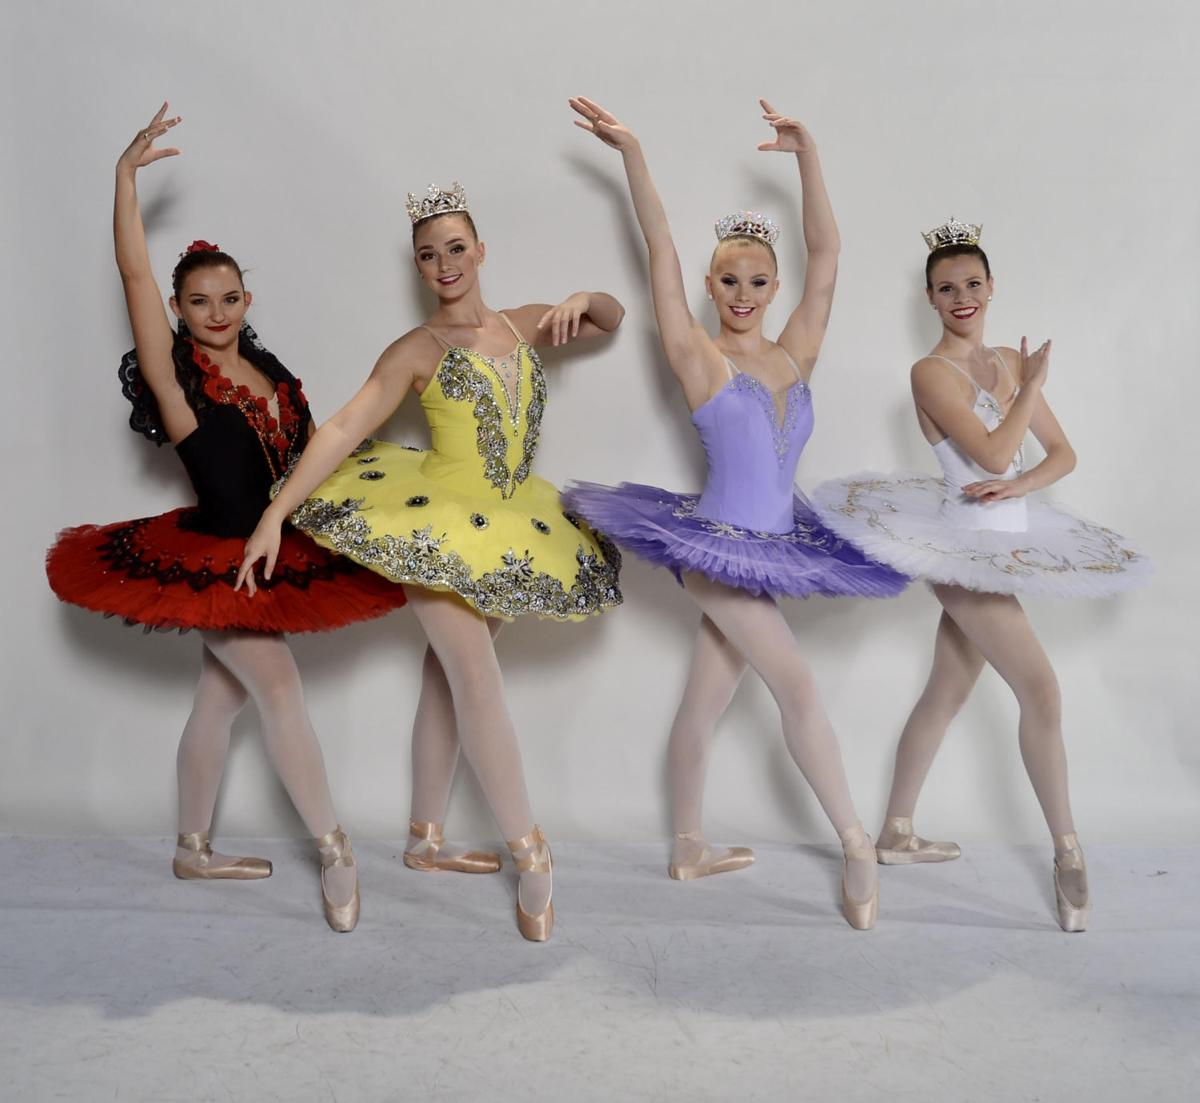 Four Ahwatukee high school seniors will be taking their final bows in the Ahwatukee Nutcracker next month. They include, from left: Madi Nash as Spanish Queen, Olivia Nash as Butterfly Queen, Jordan Torgerson as the Sugar Plum Fairy and Morgan Zittel as the Angel Queen.